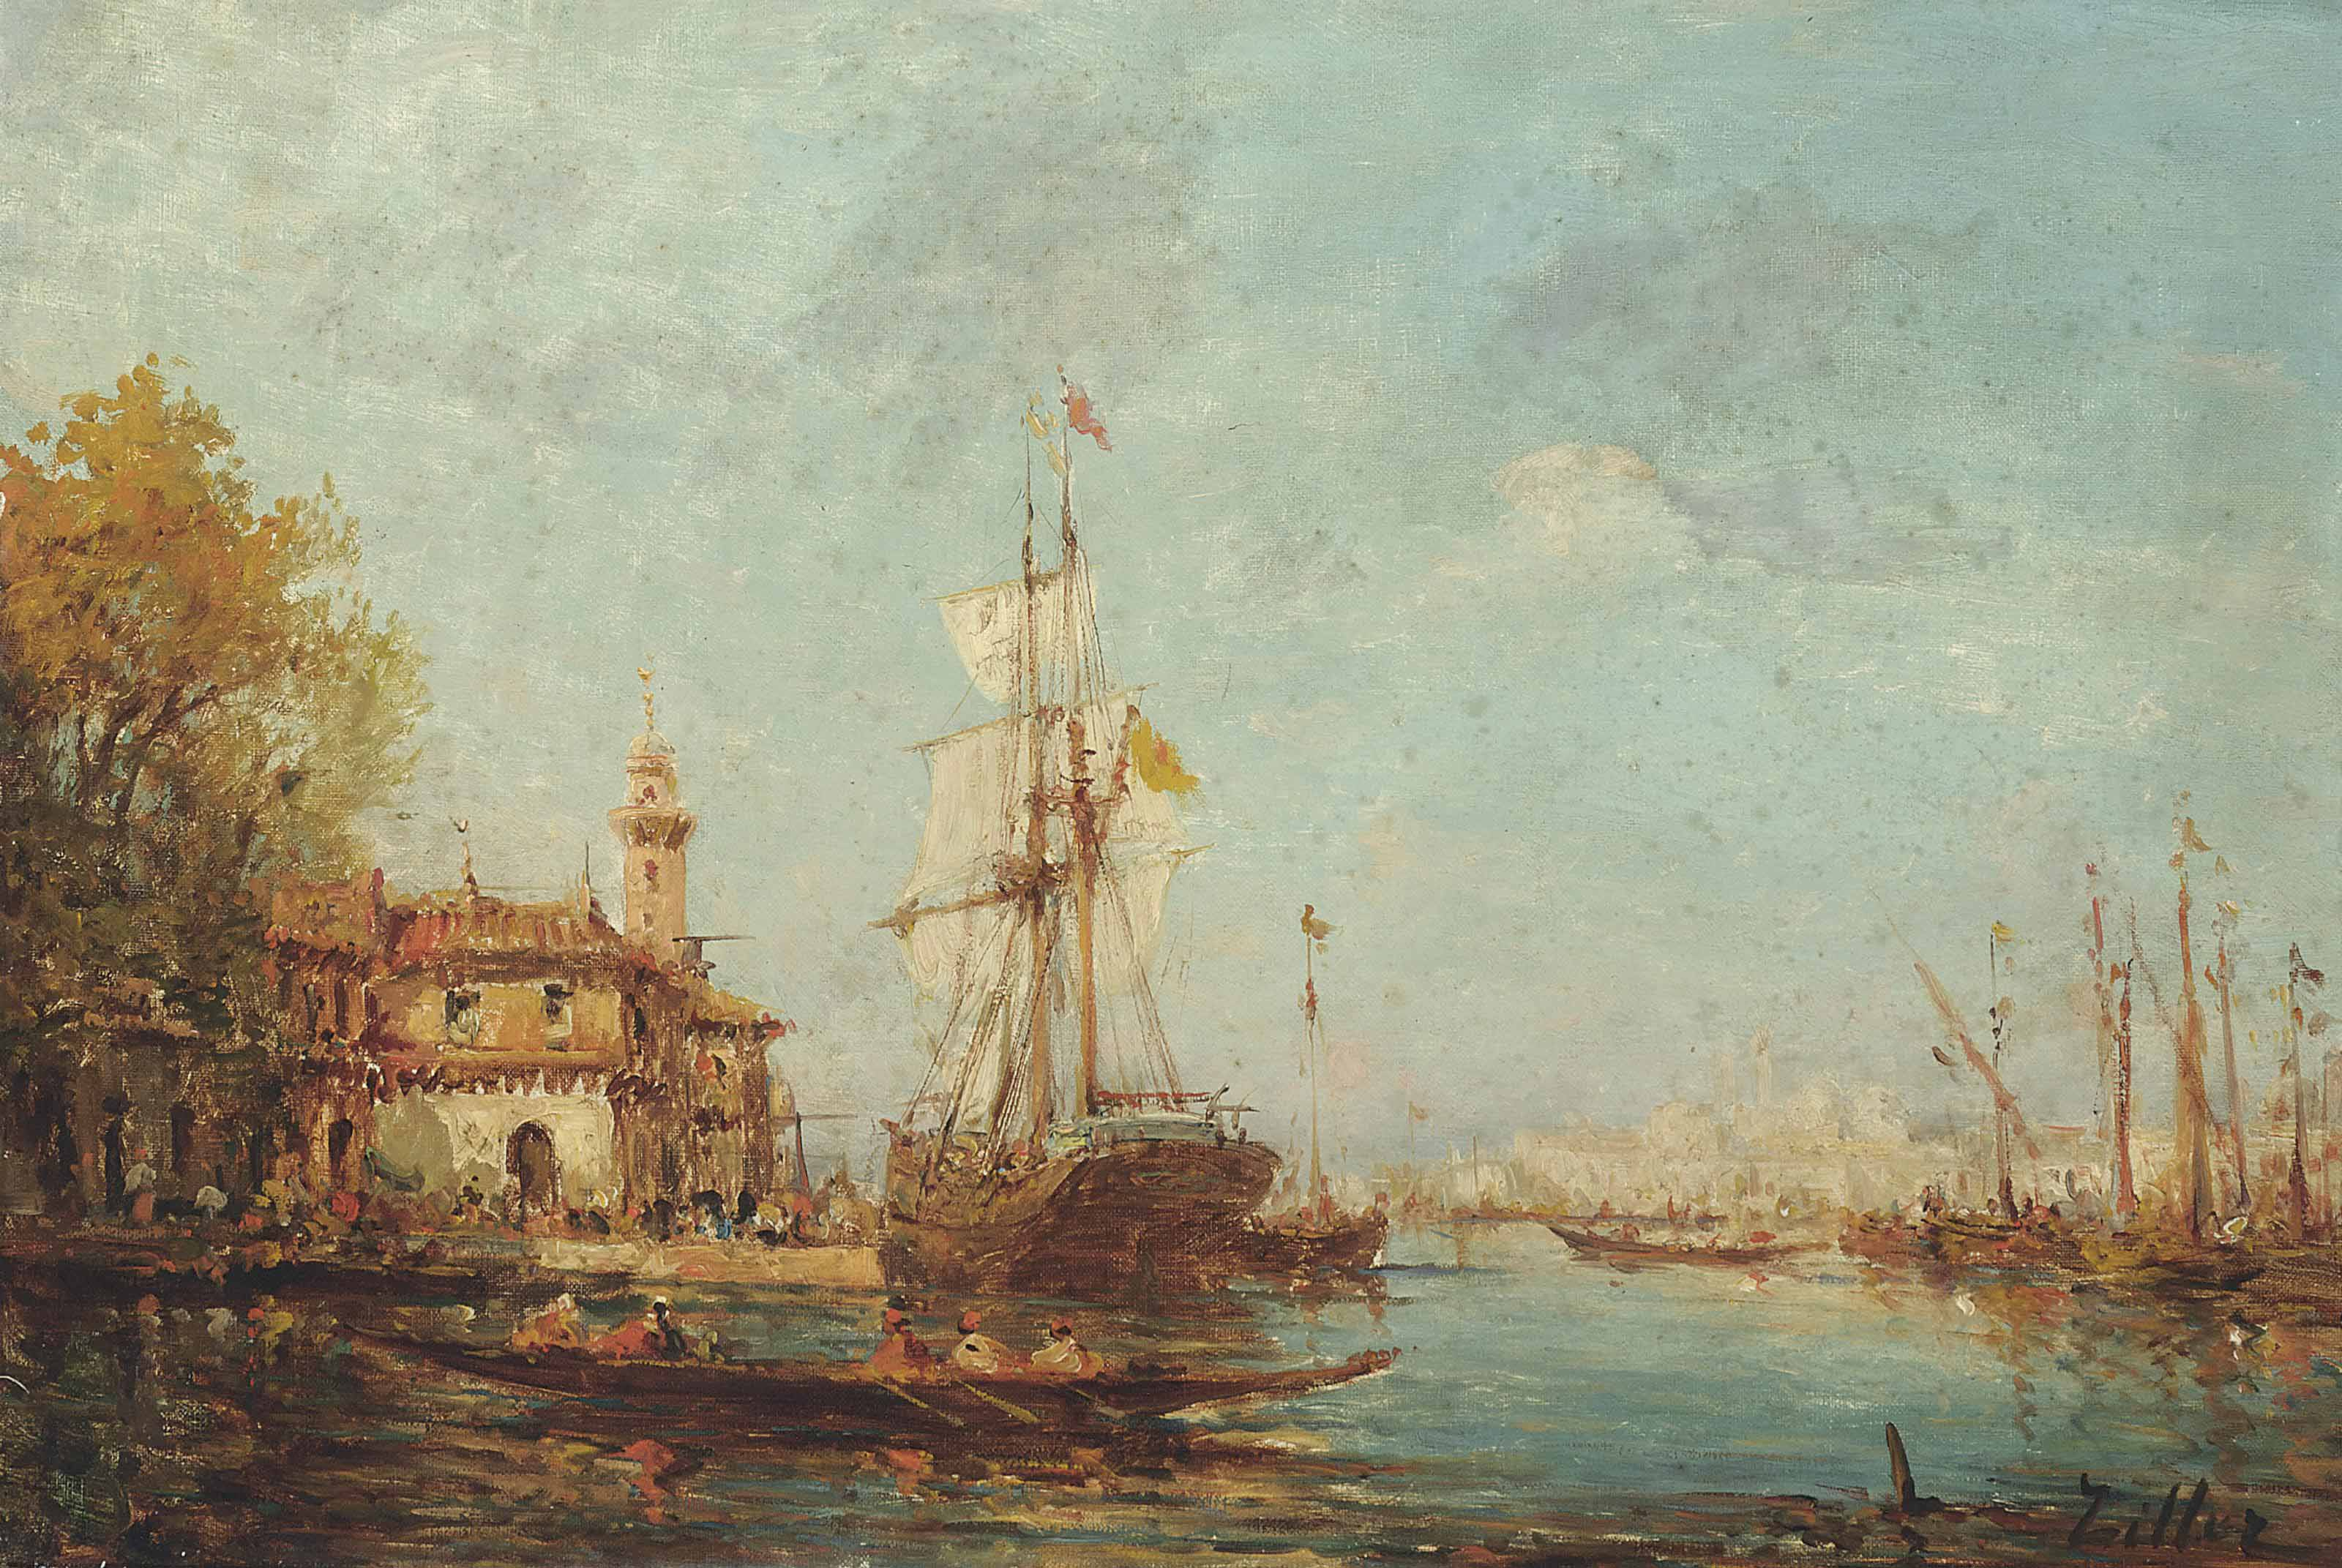 Vessels on the Bosphorus